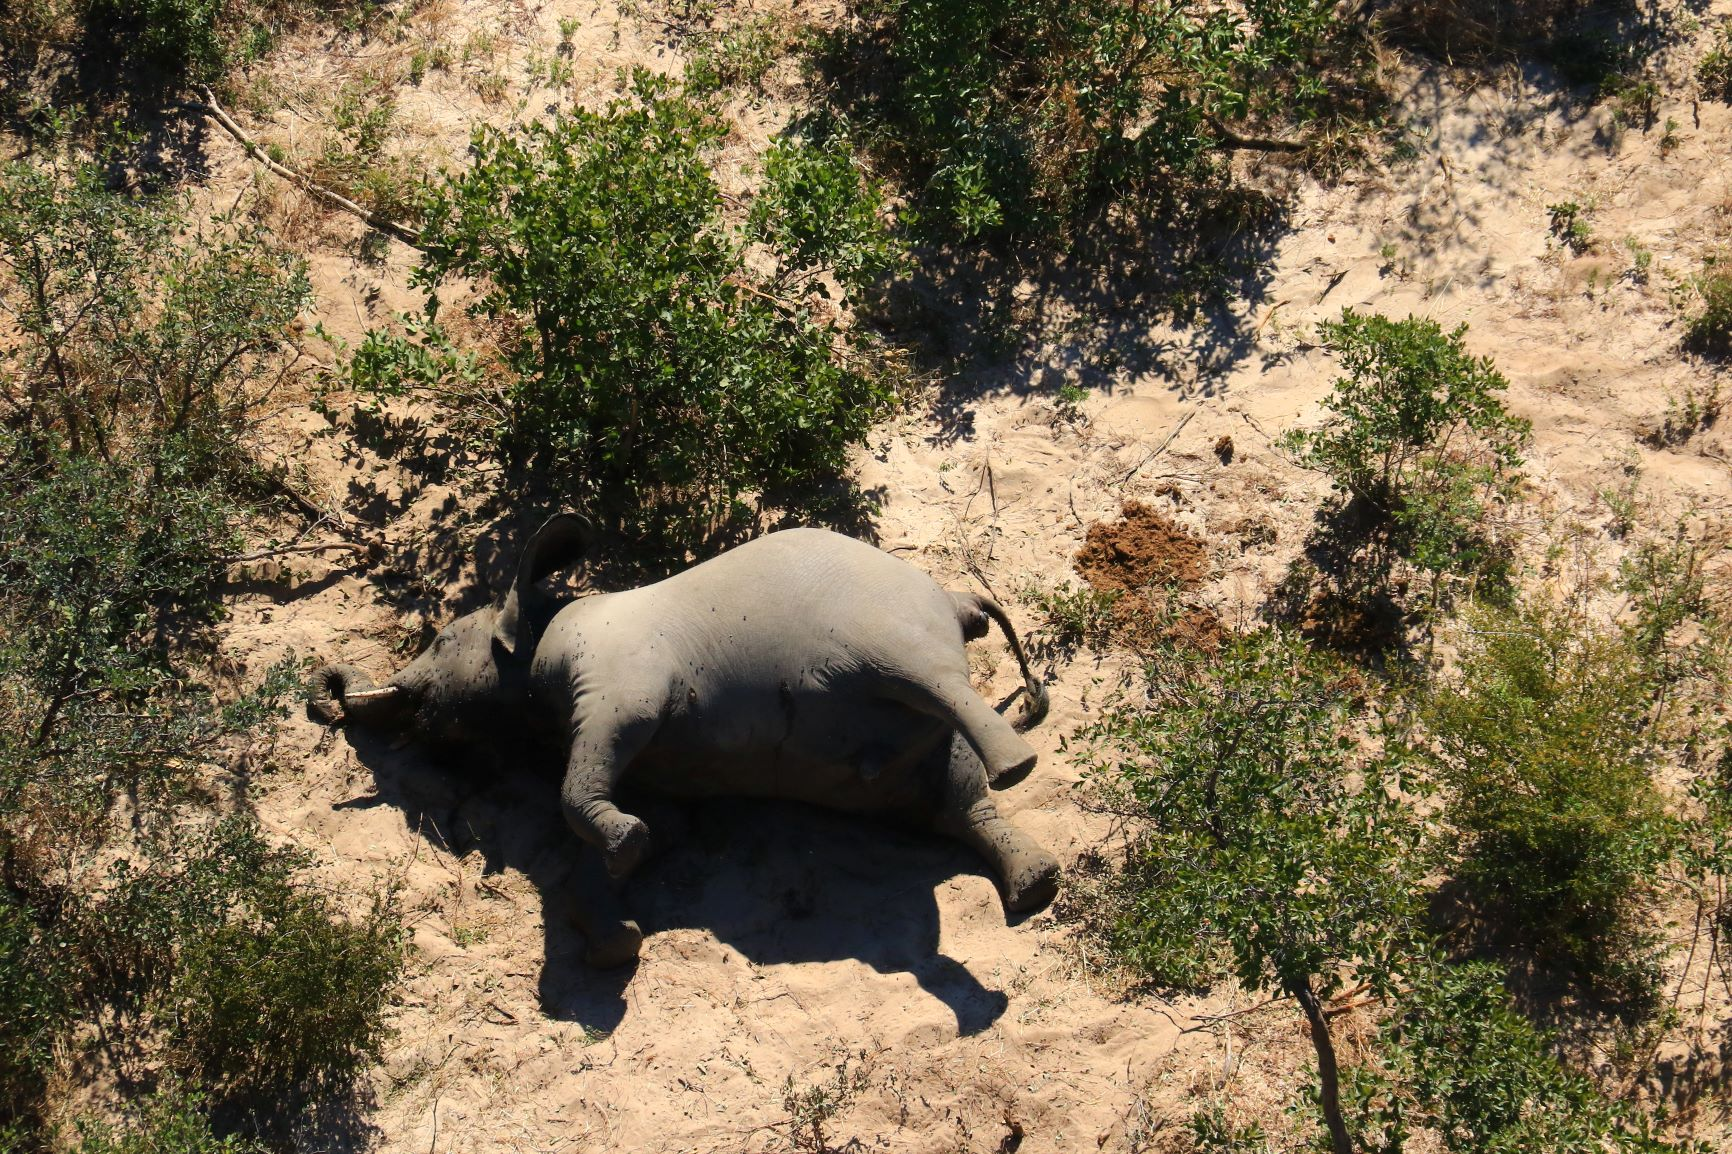 Botswana elephant deaths 'caused by toxins'